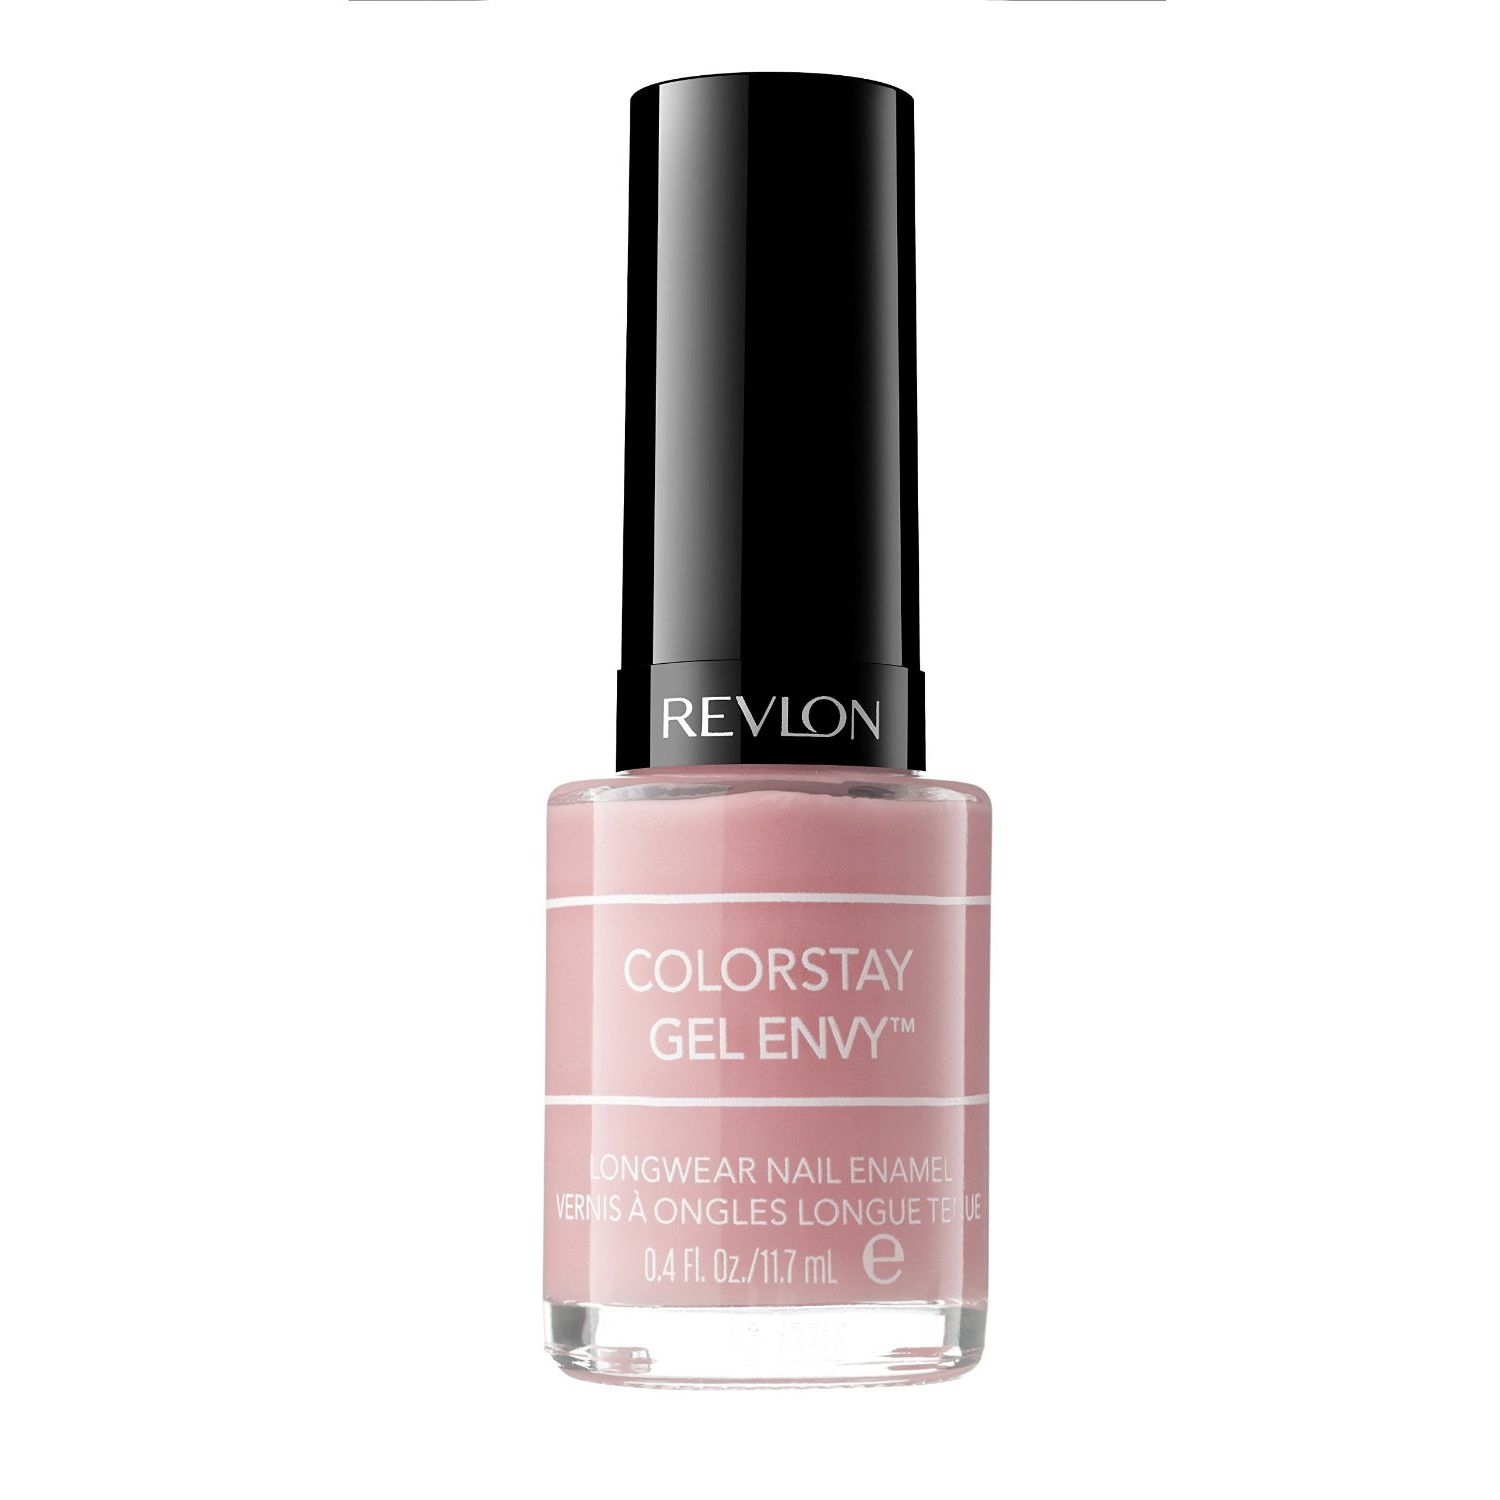 Revlon Colorstay Gel Envy Smalto 117 ml  100 Card Shark